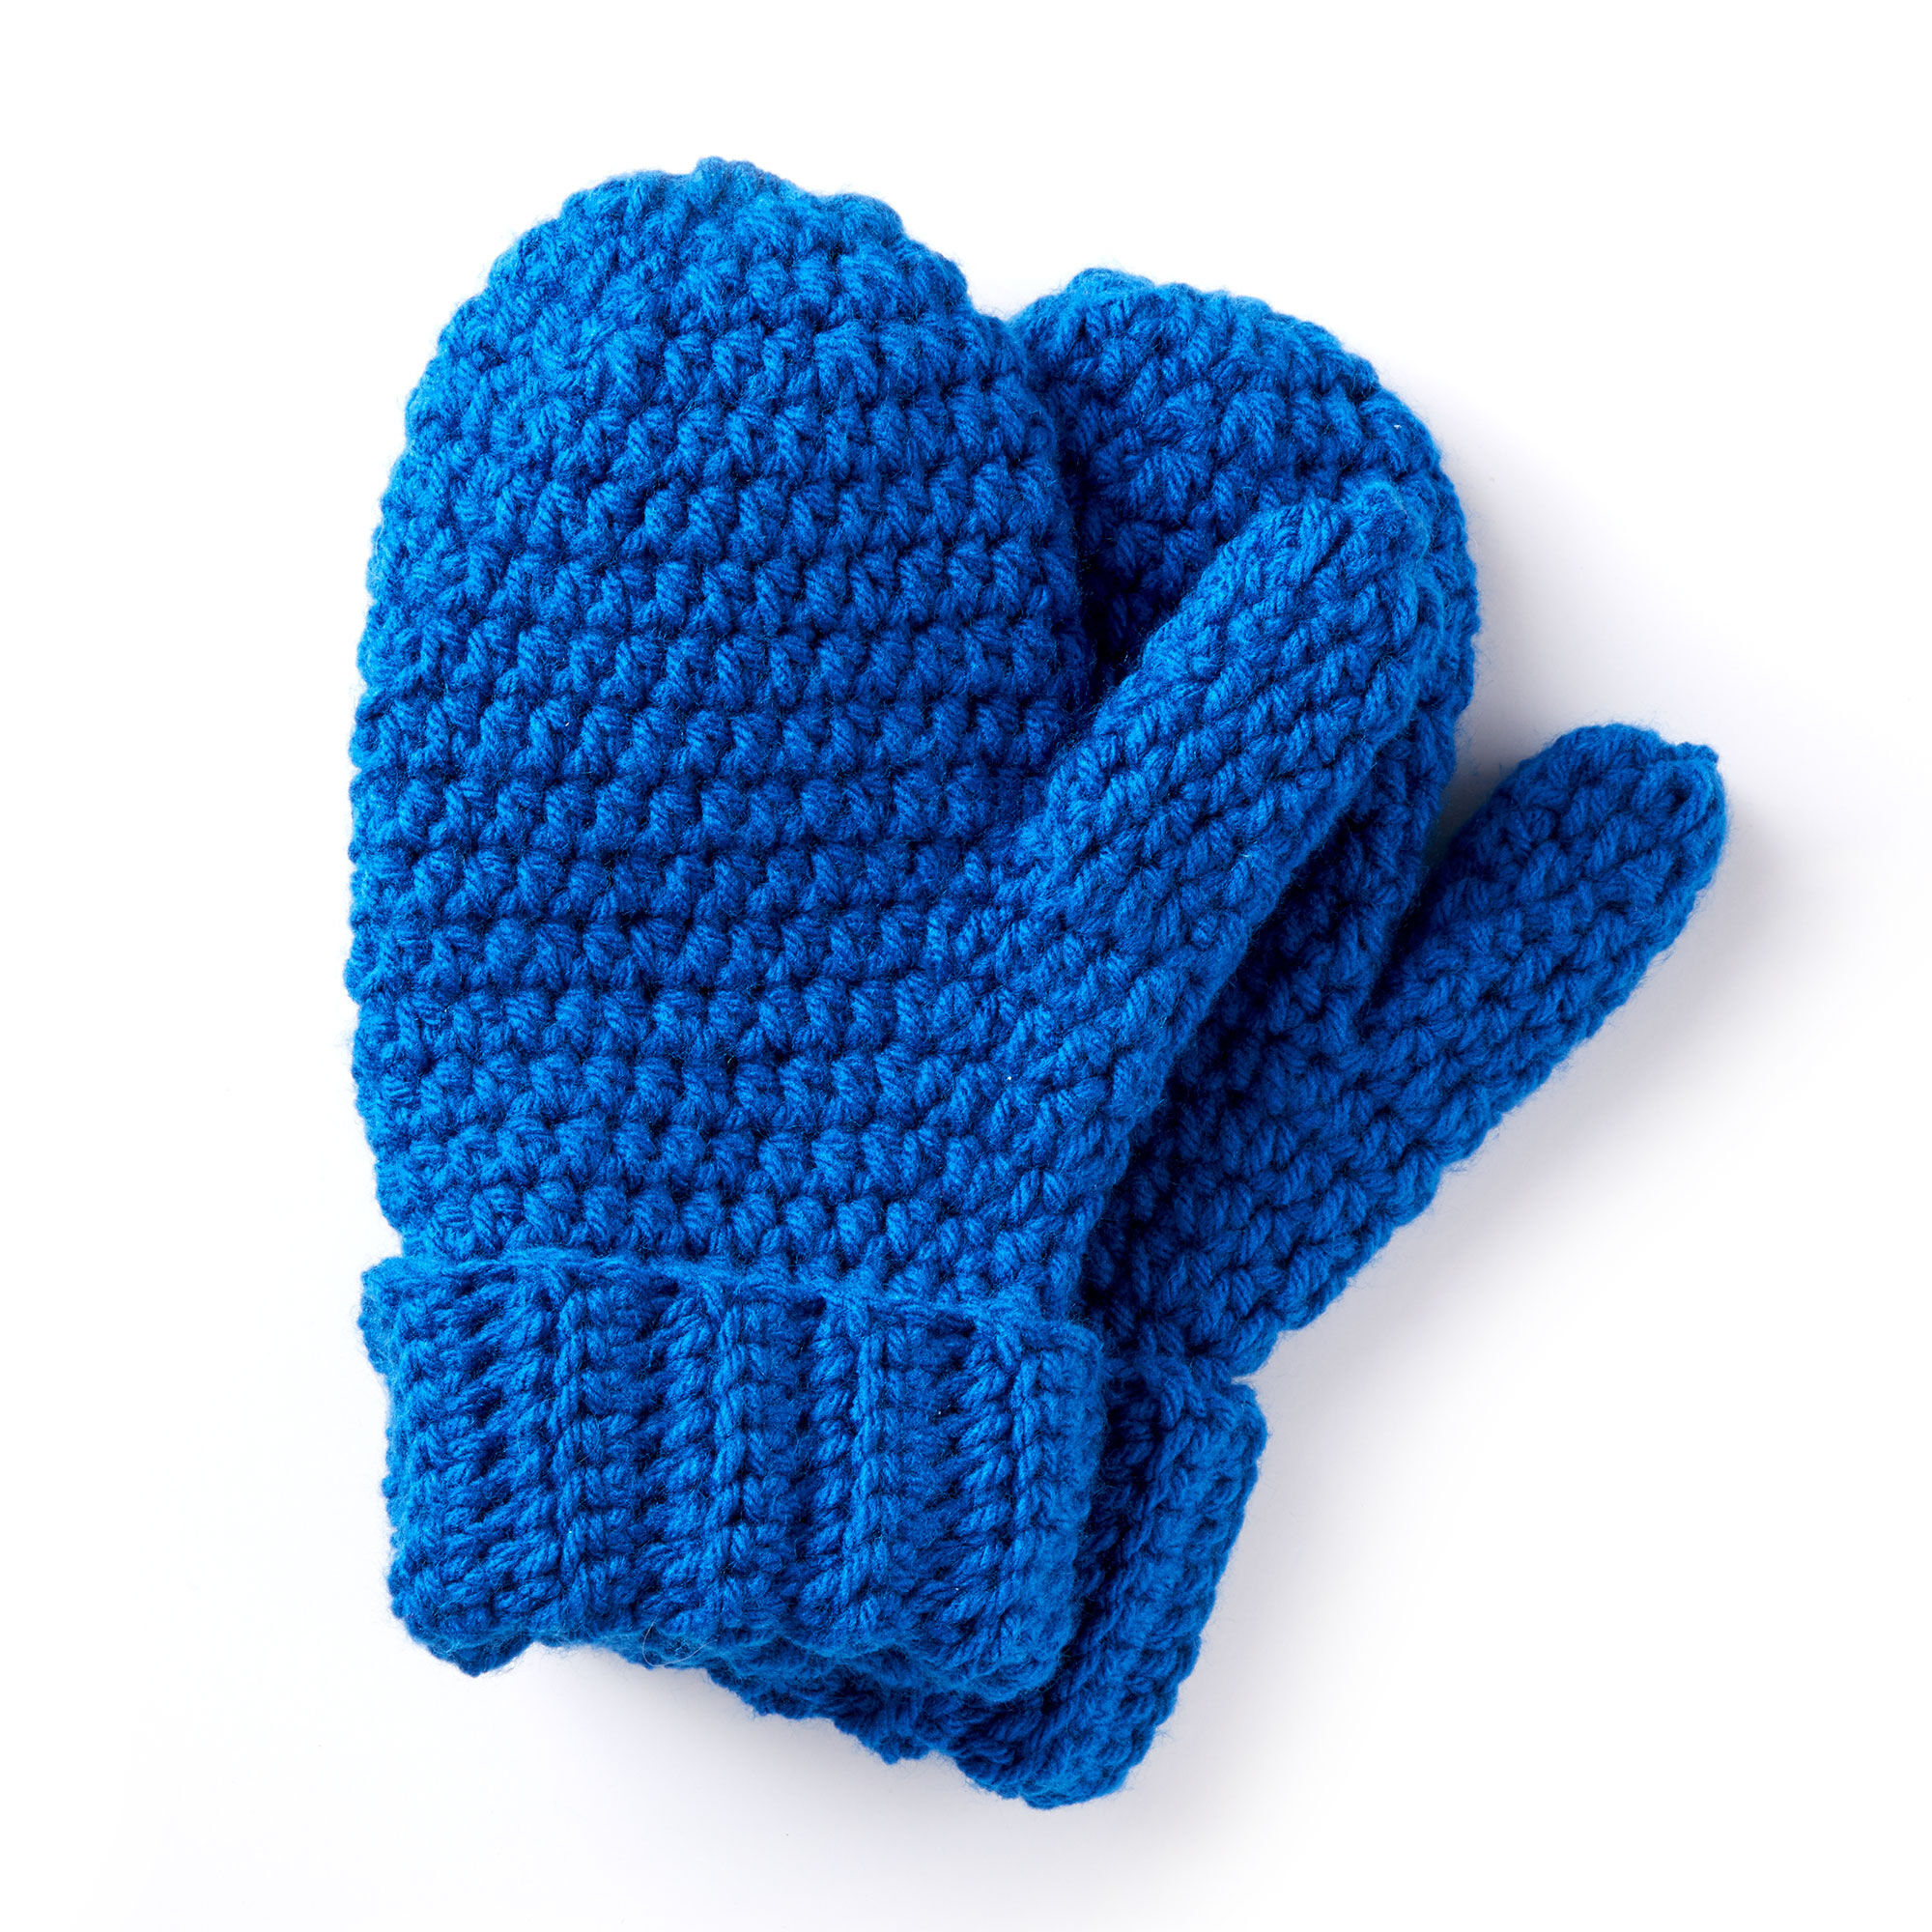 Caron Hands Full Crochet Mittens, Blue | Yarnspirations